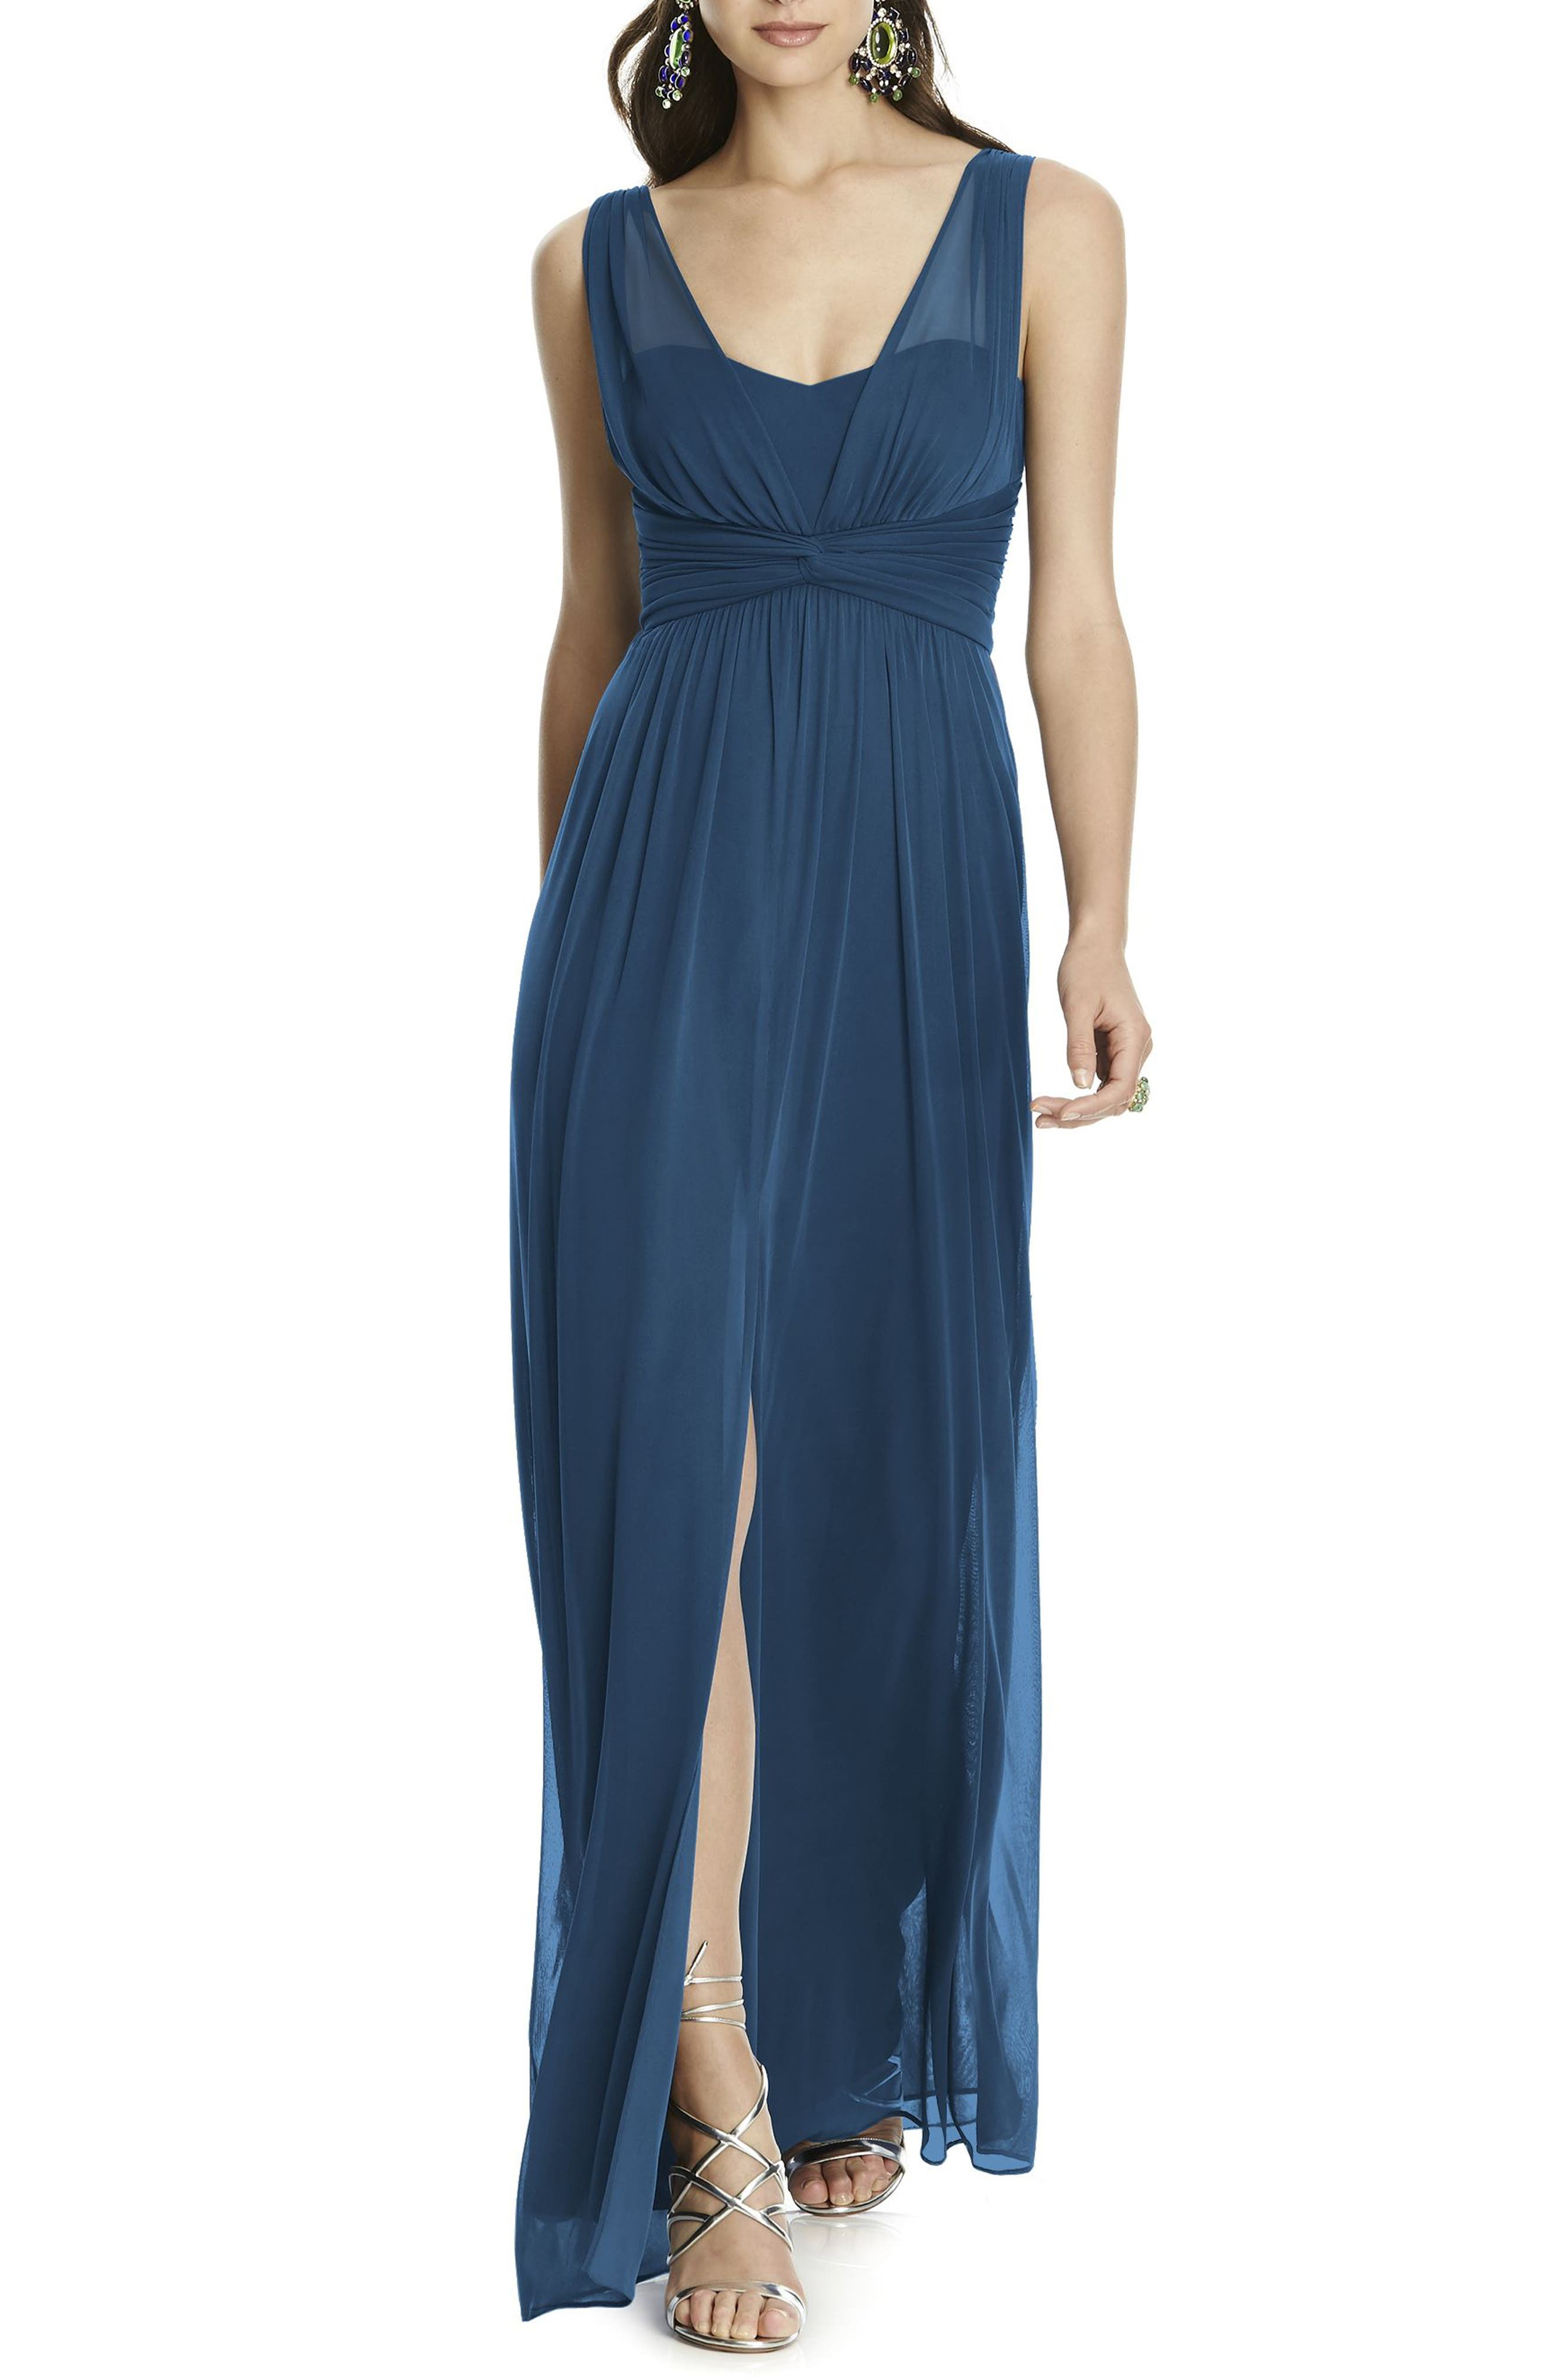 Alternate Image 1 Selected - Alfred Sung Illusion Sleeve Chiffon Column Gown